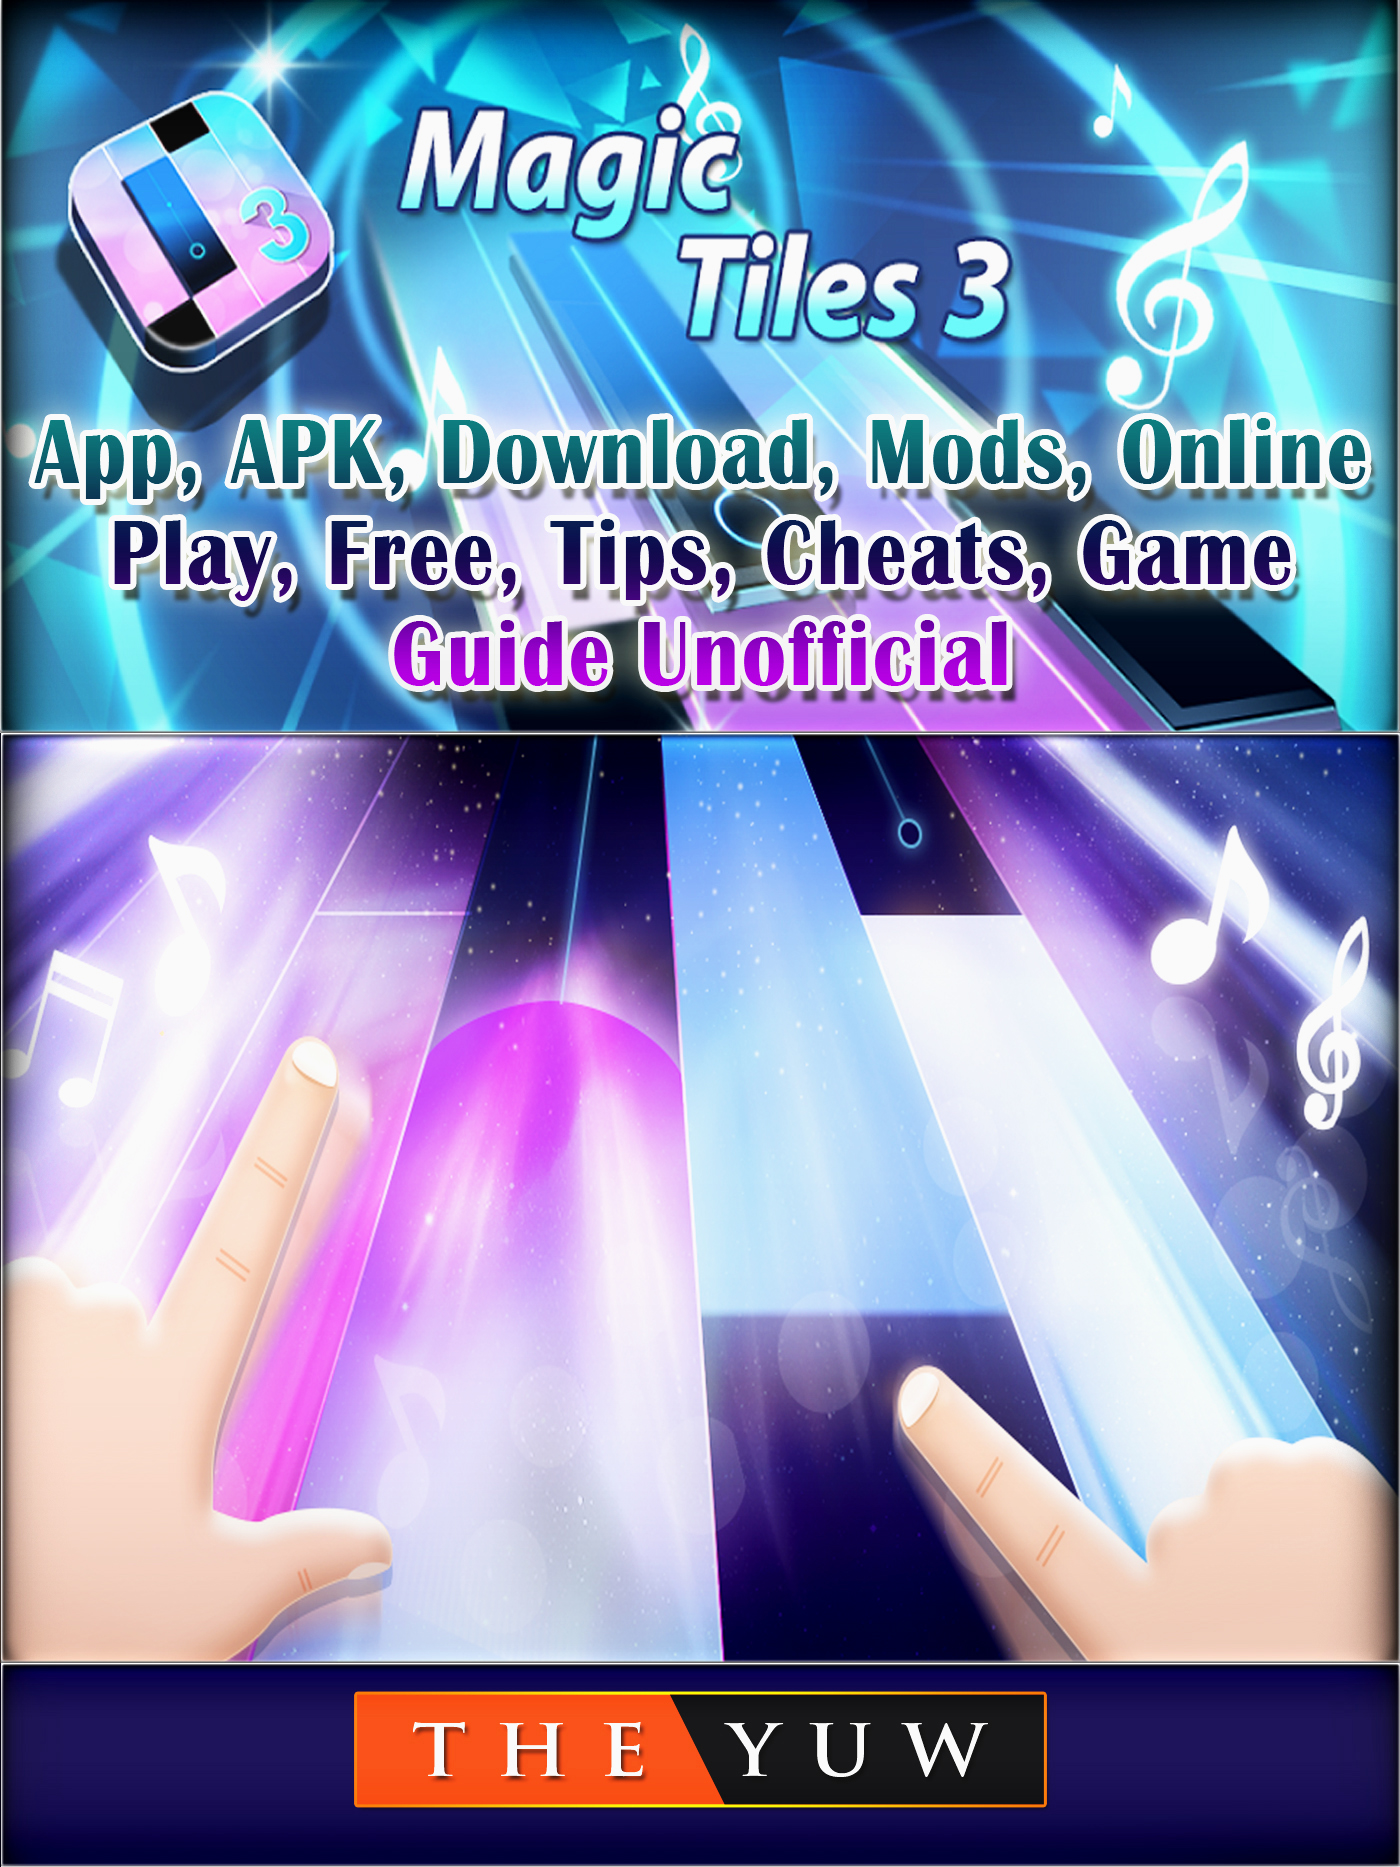 Magic Tiles 3,App, APK, Download, Mods, Online, Play, Free, Tips, Cheats, Game Guide Unofficial By The Yuw